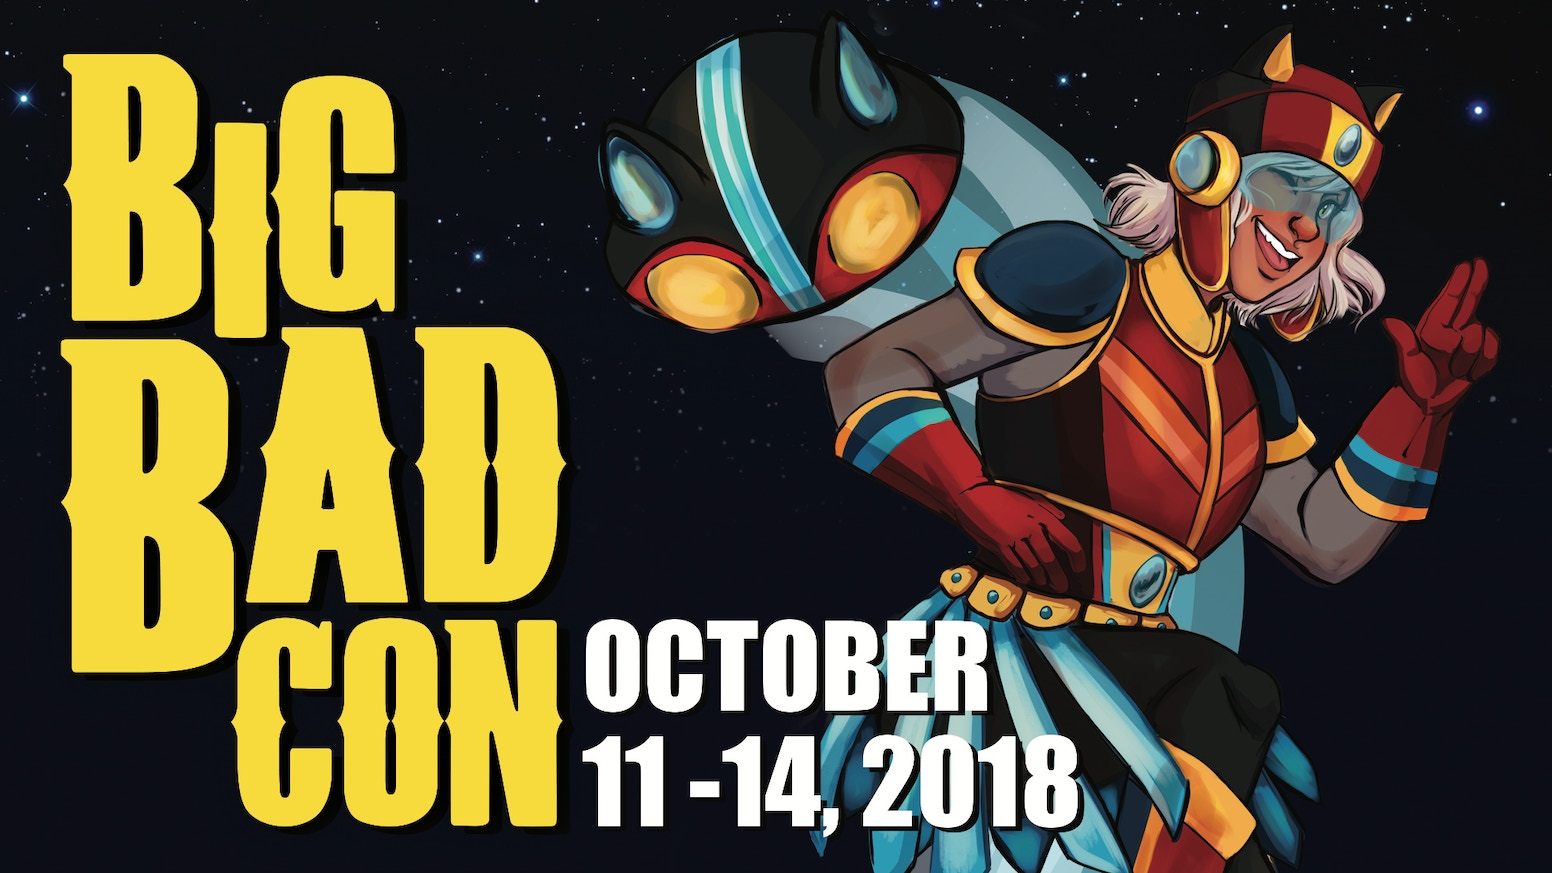 Big Bad Con is a tabletop and live action gaming convention built on great games and a welcoming community. Join us October 11-14!